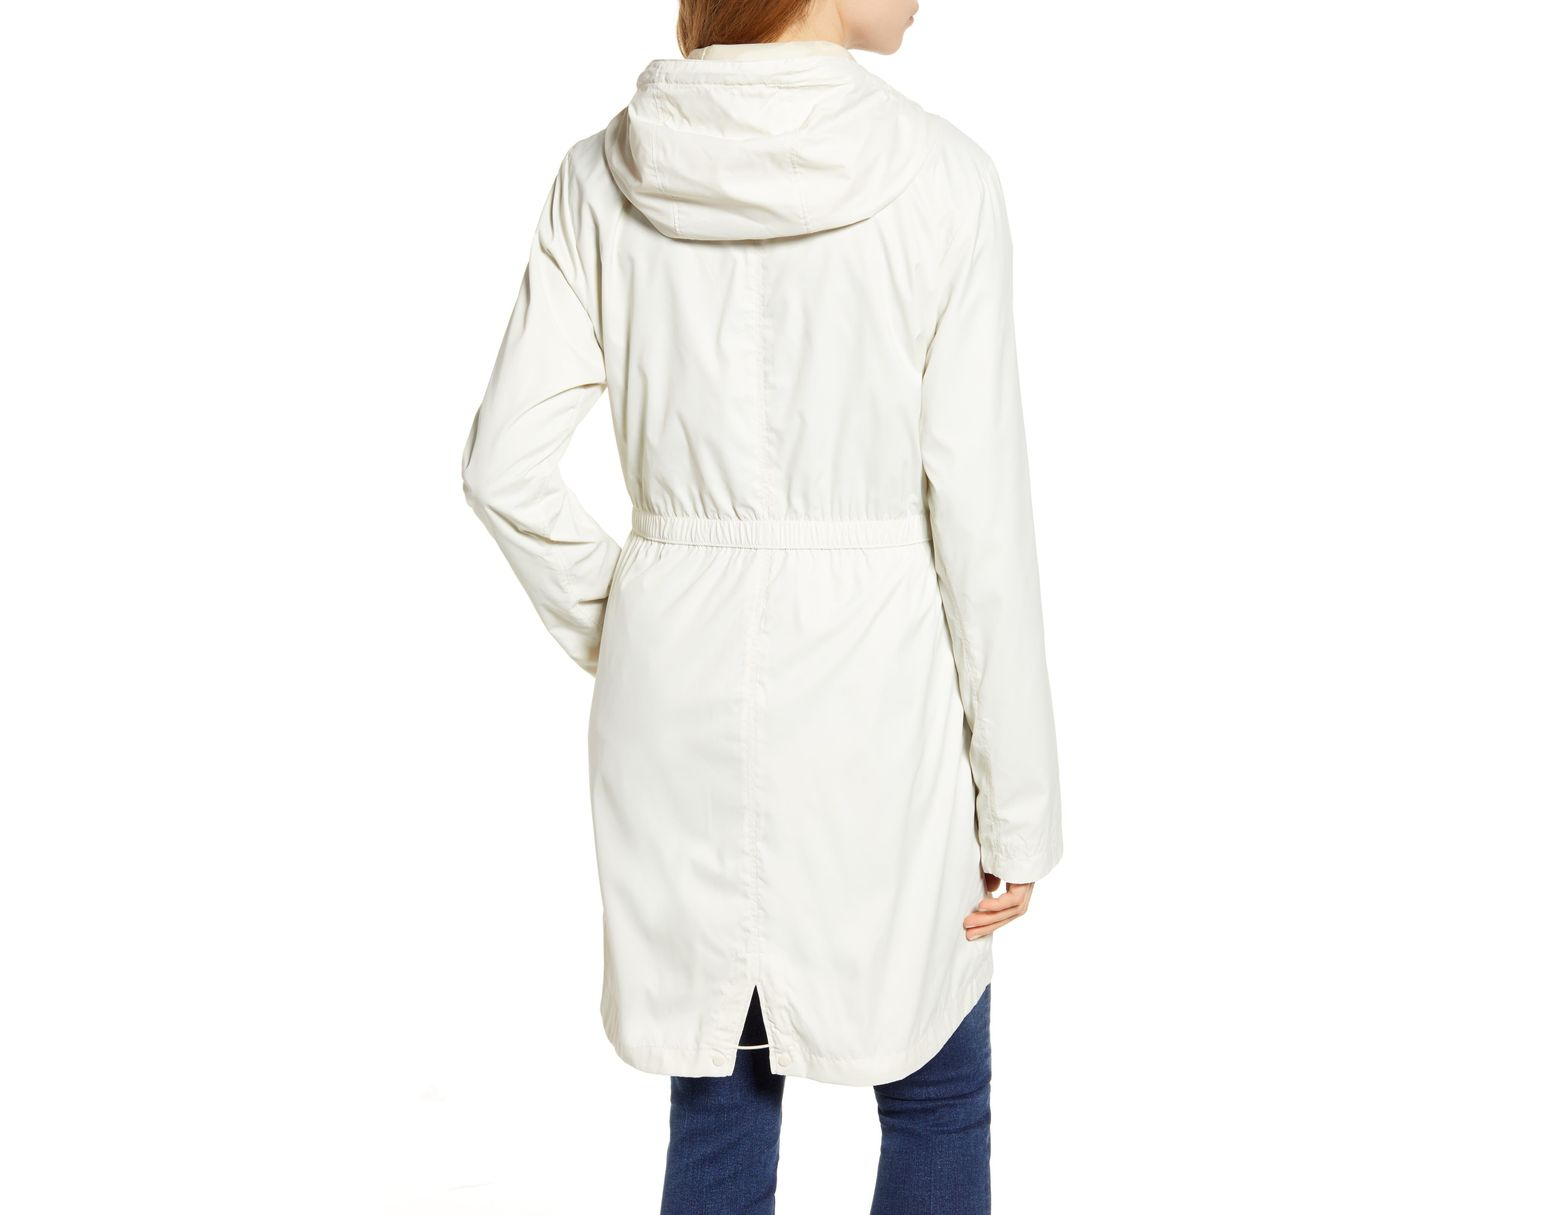 ac9b77c8c Women's White Rissy 2 Hooded Water Repellent Raincoat